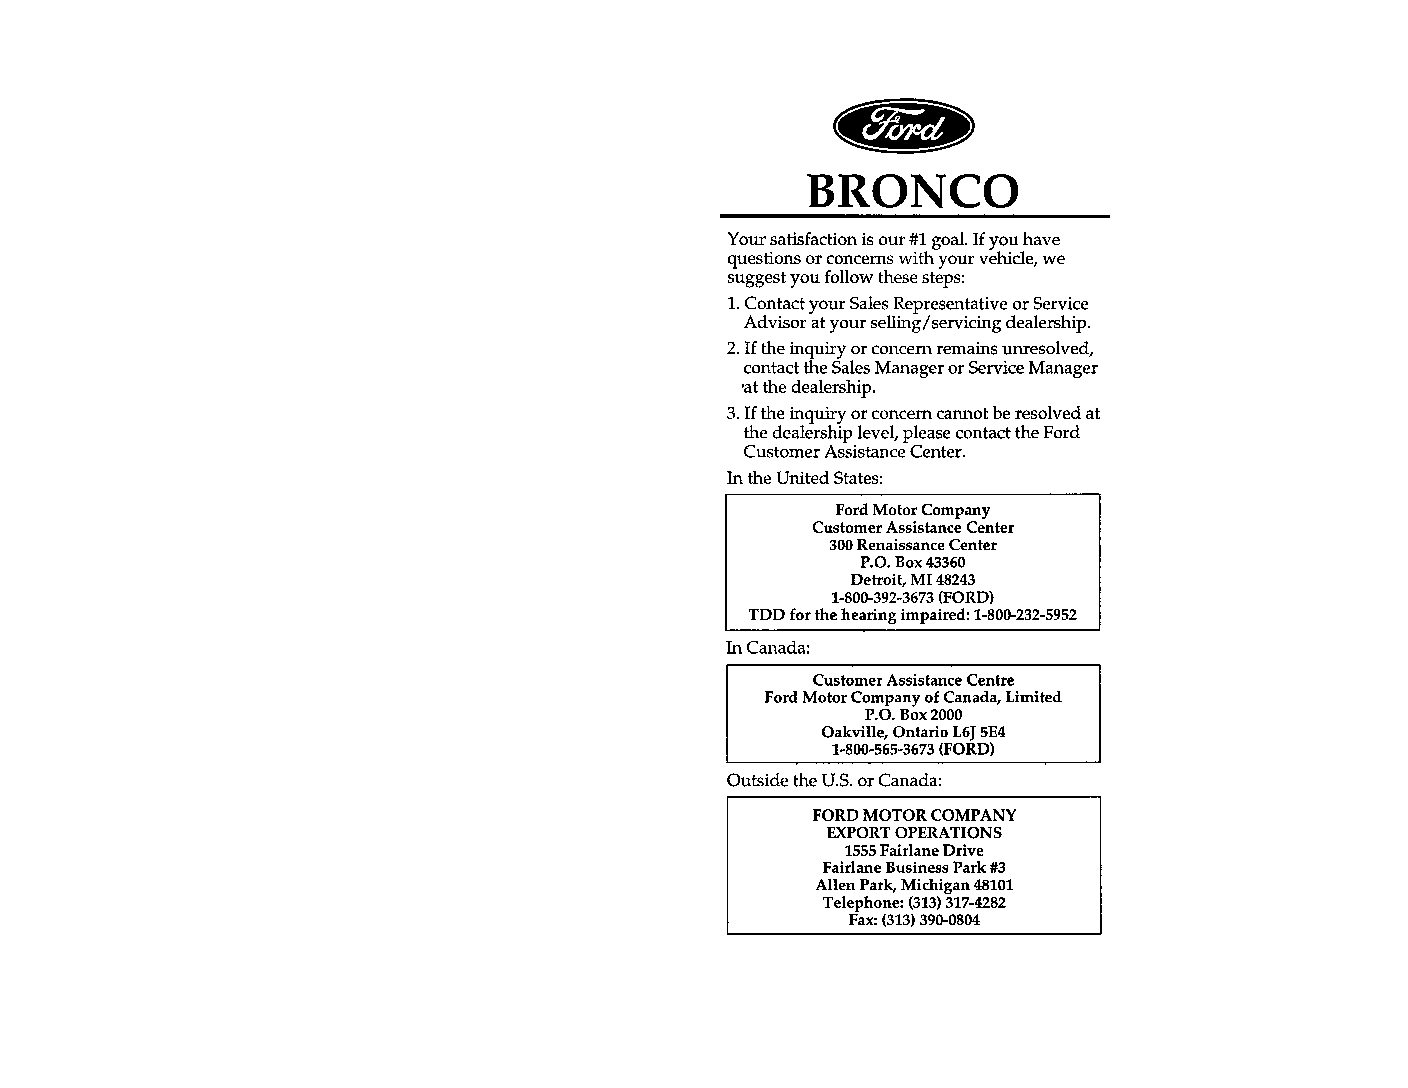 1988 Ford Bronco Owner s Manual Owners Manual Just Give